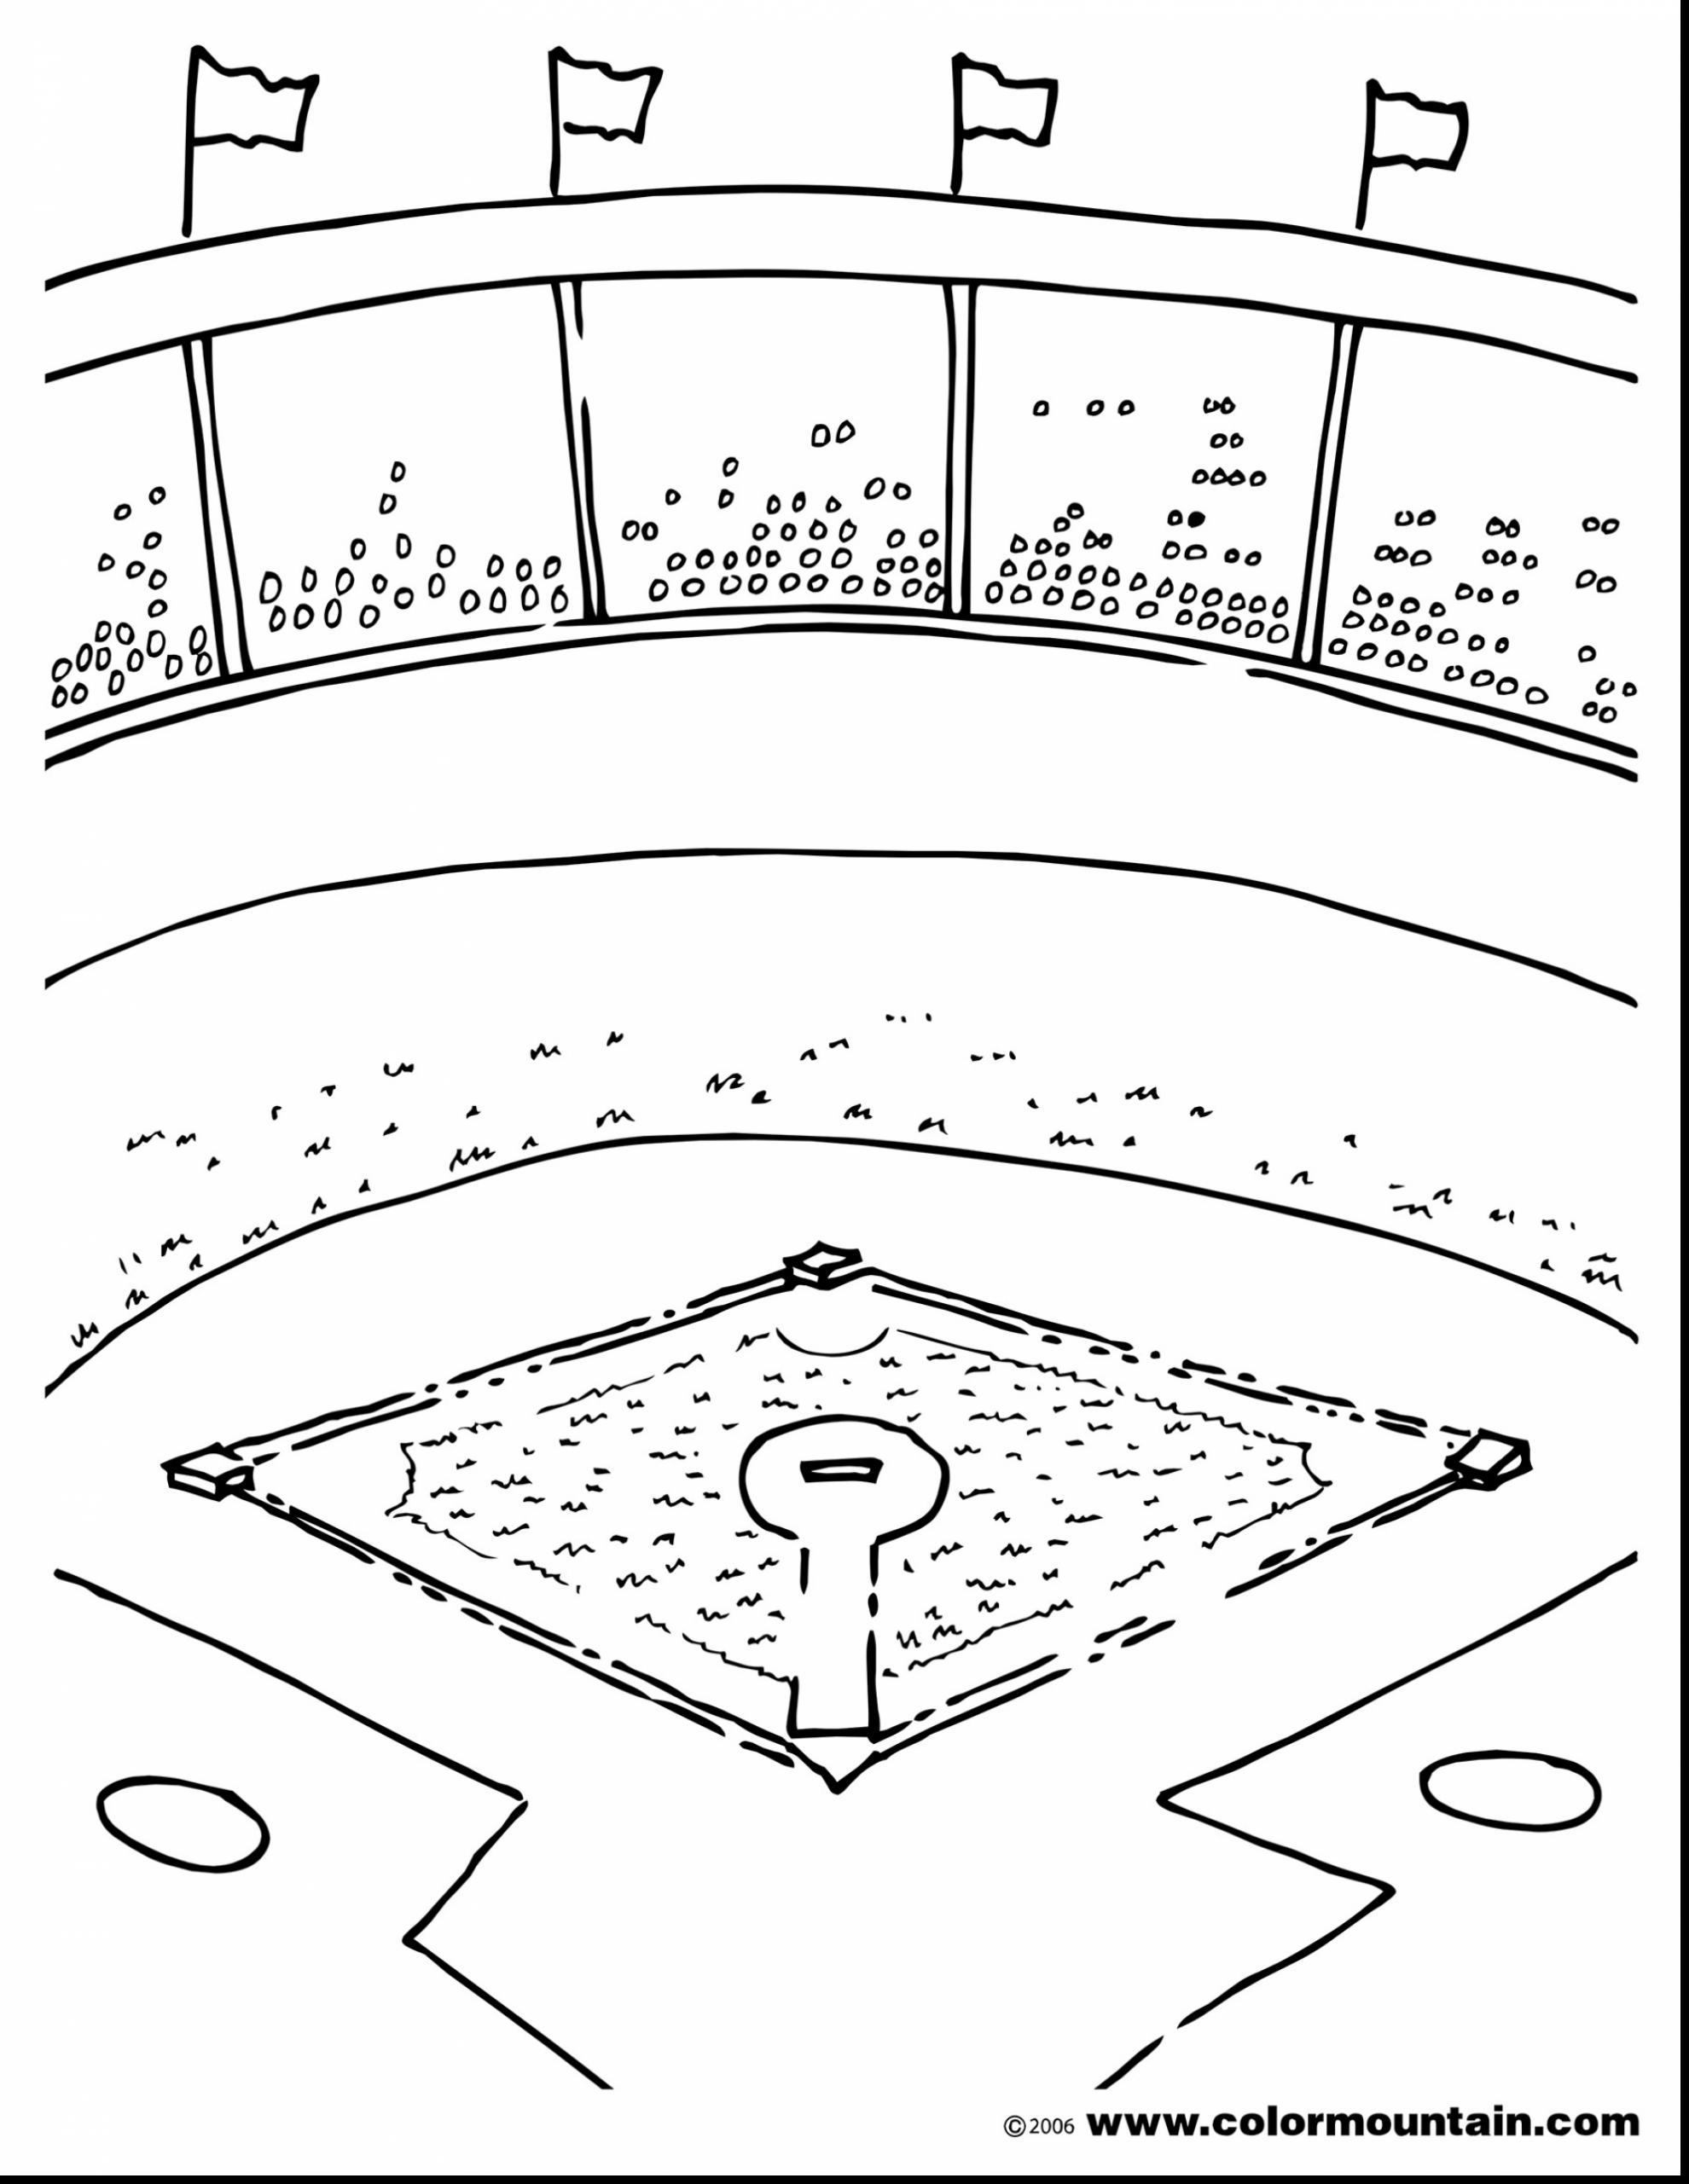 baseball field diagram printable layout software to create network diamond drawing at getdrawings free for